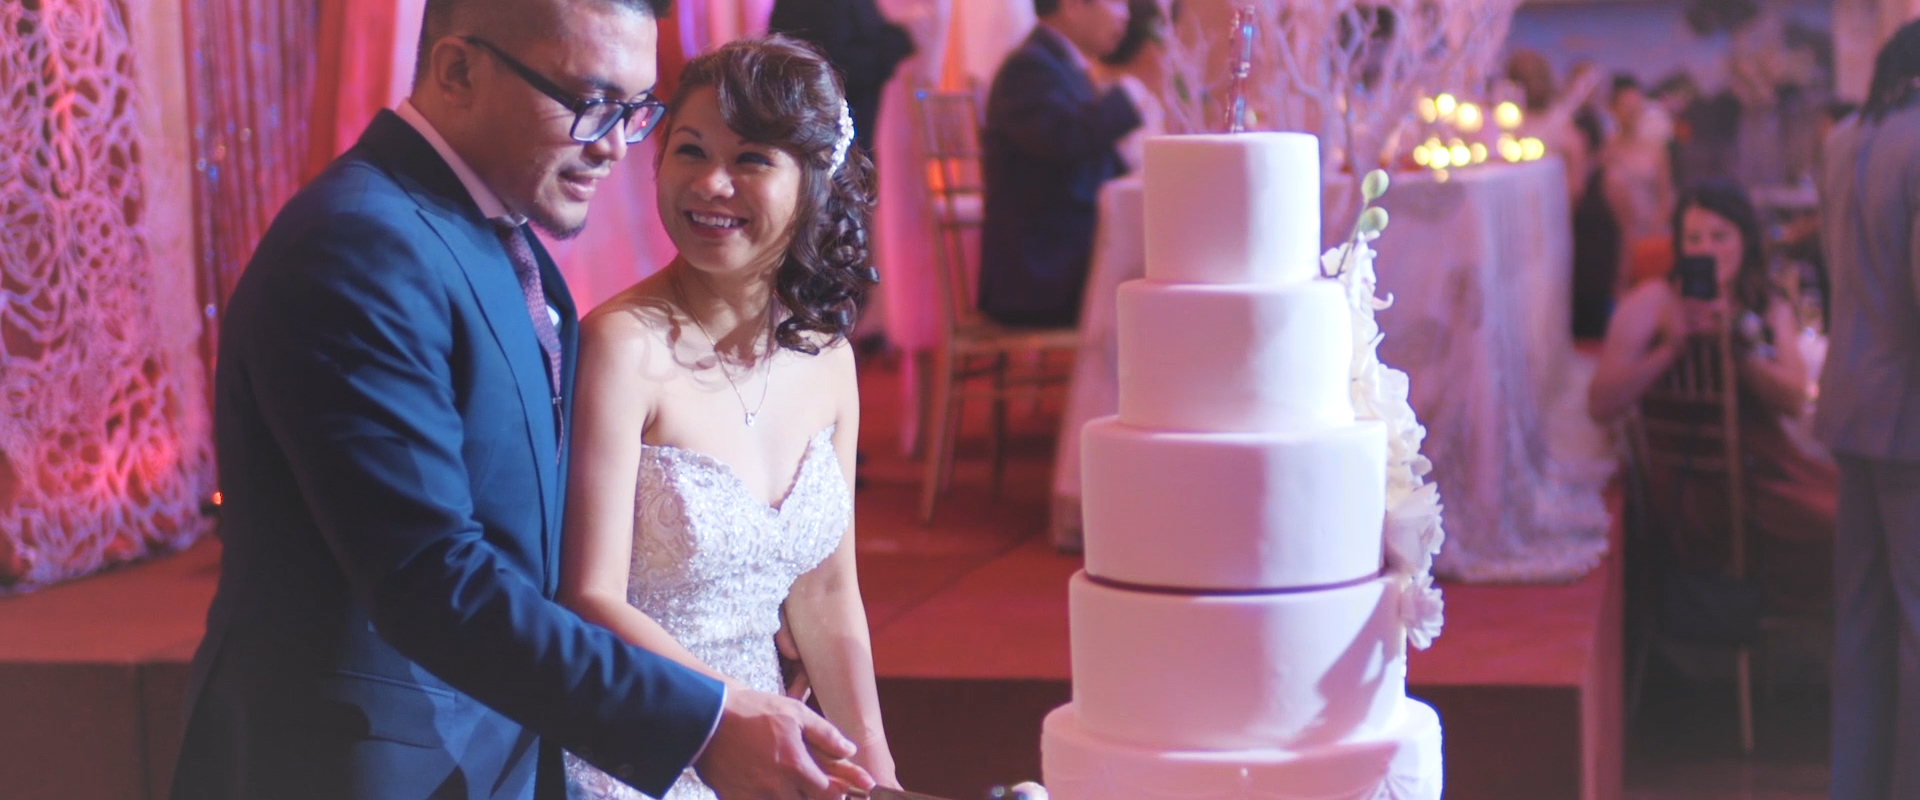 An image of a couple cutting their cake at their wedding reception; taken from one of our Toronto Wedding Videos